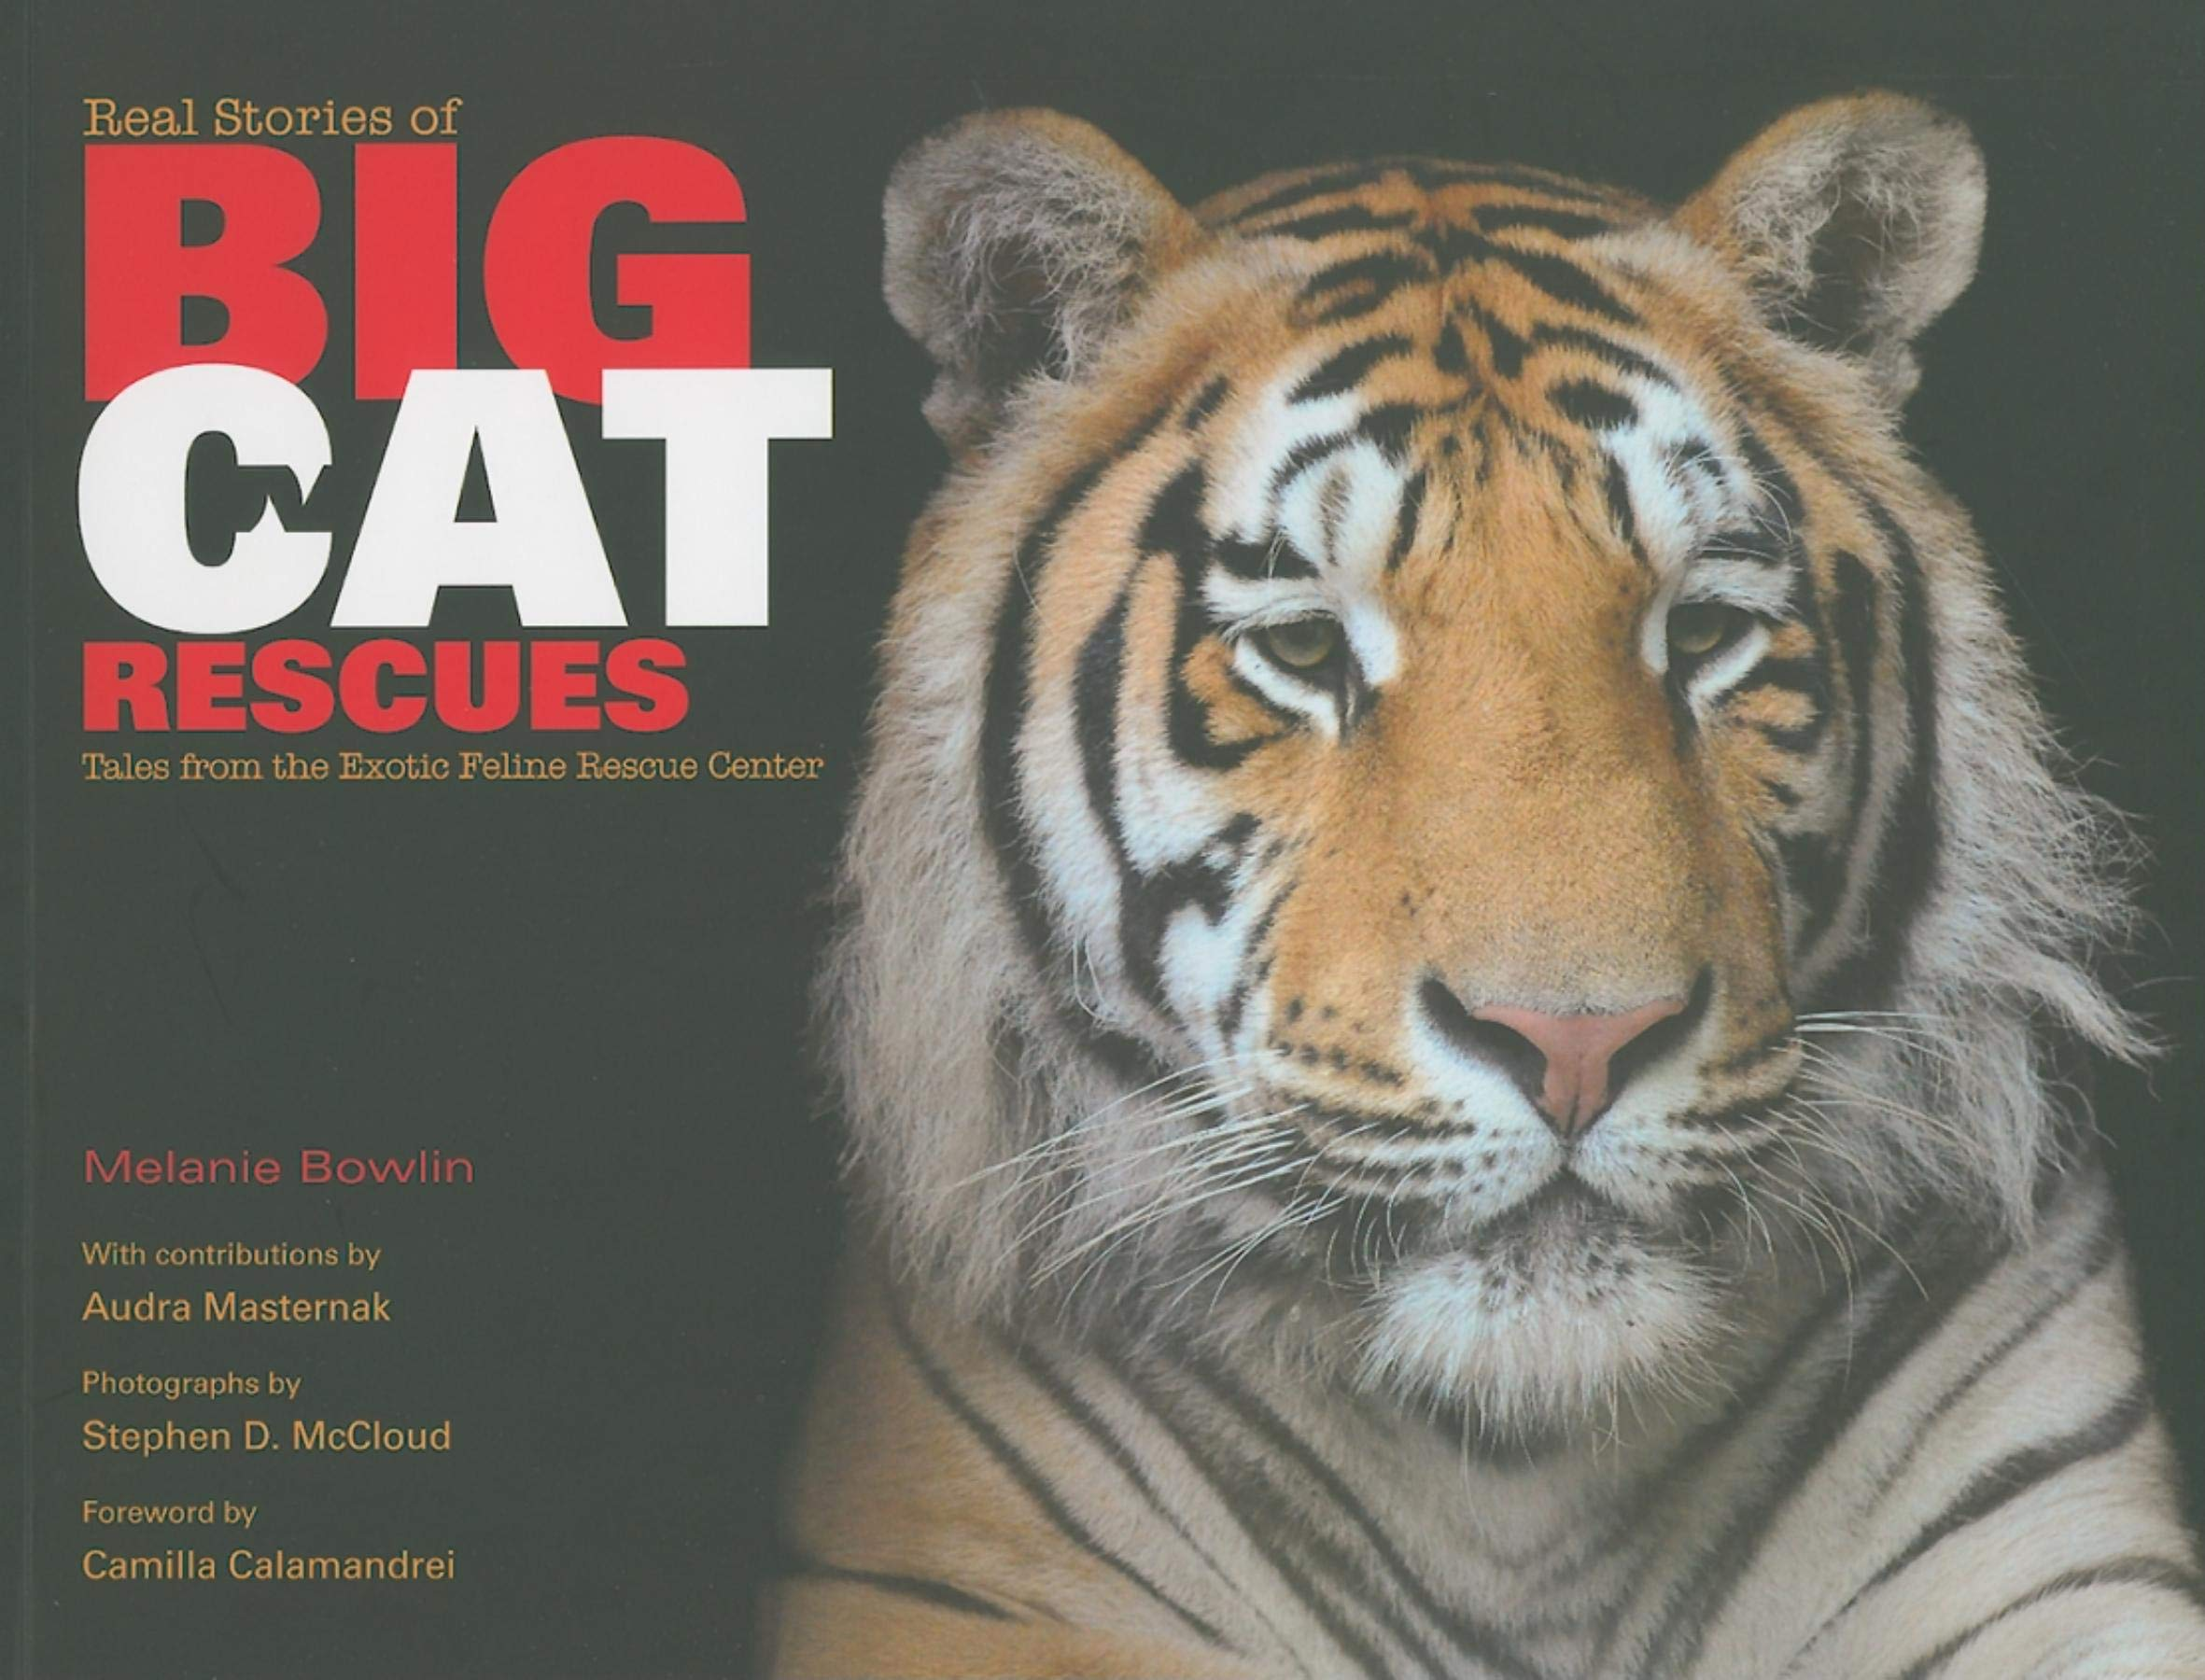 Real Stories of Big Cat Rescues: Tales from the Exotic